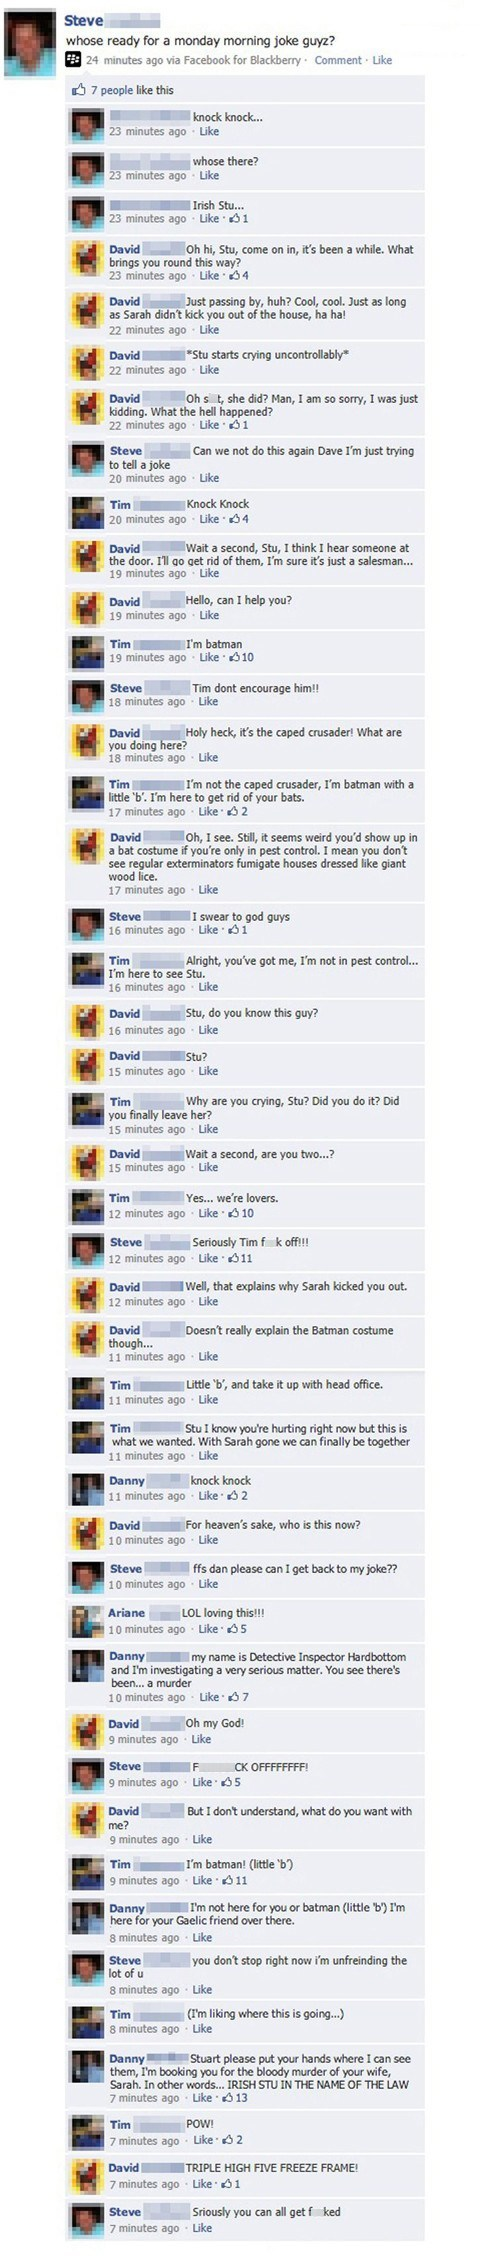 jokes,trolling,knock knock joke,failbook